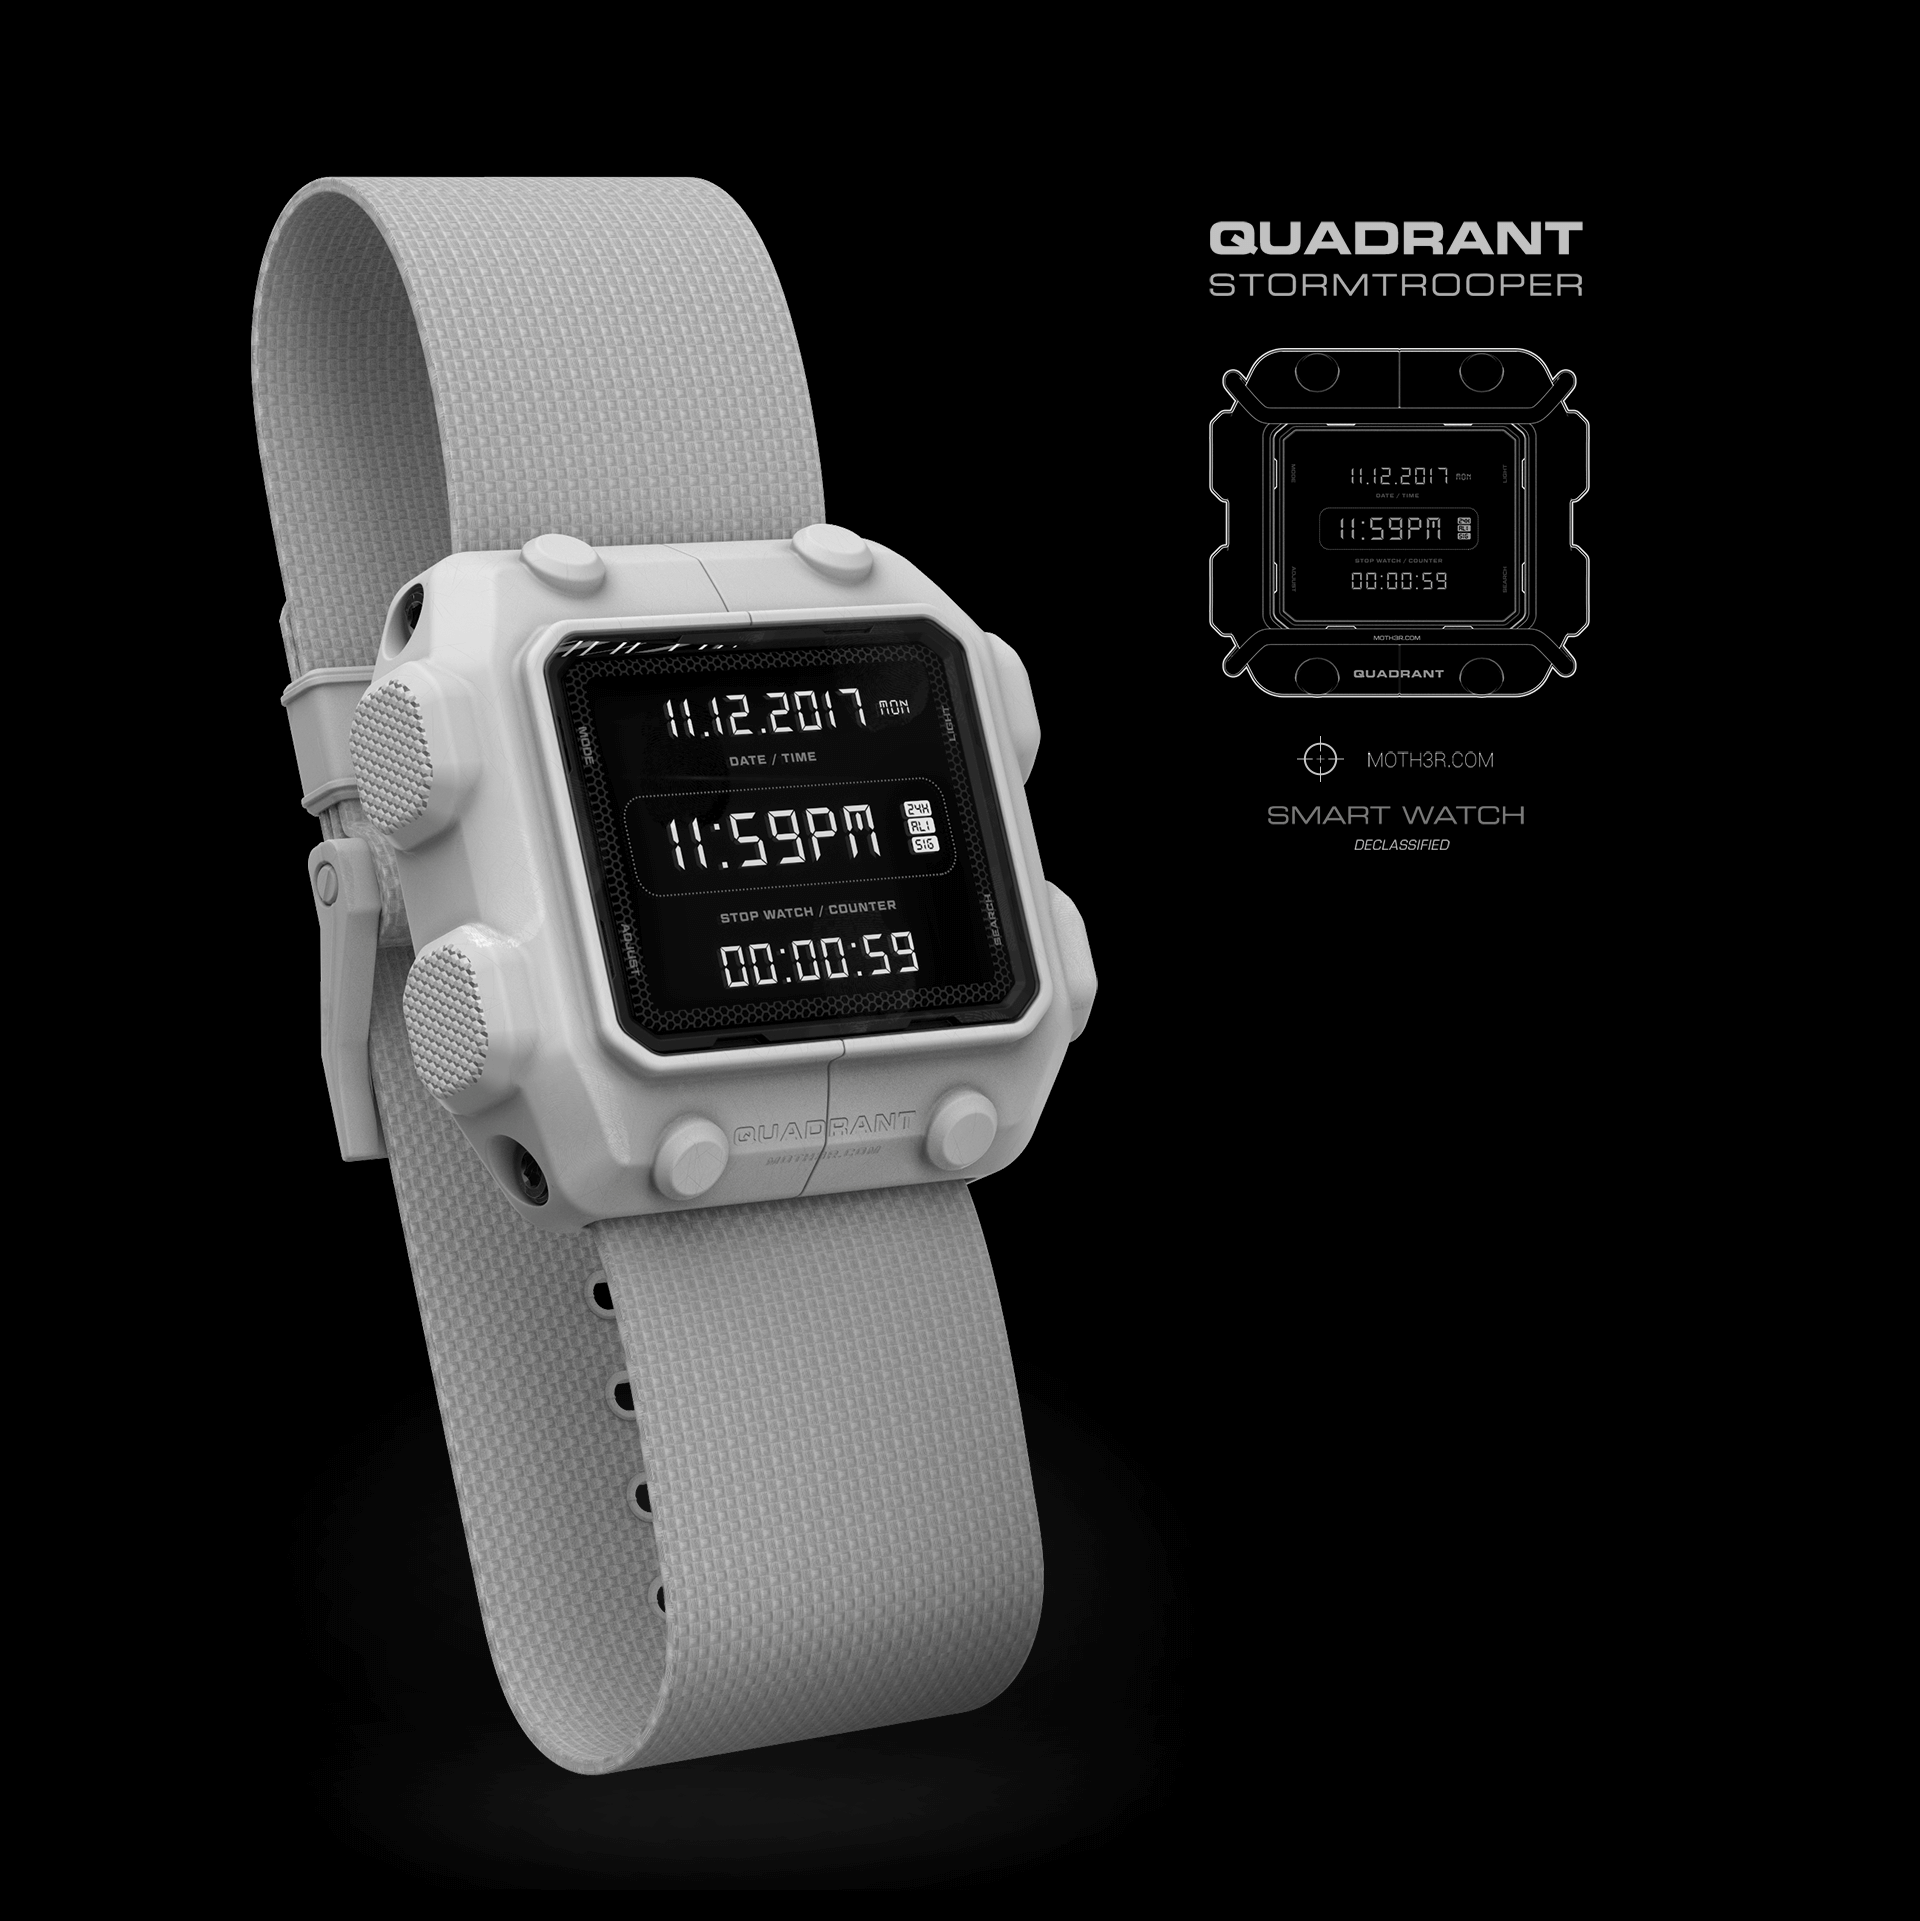 Watch-Render-White-01